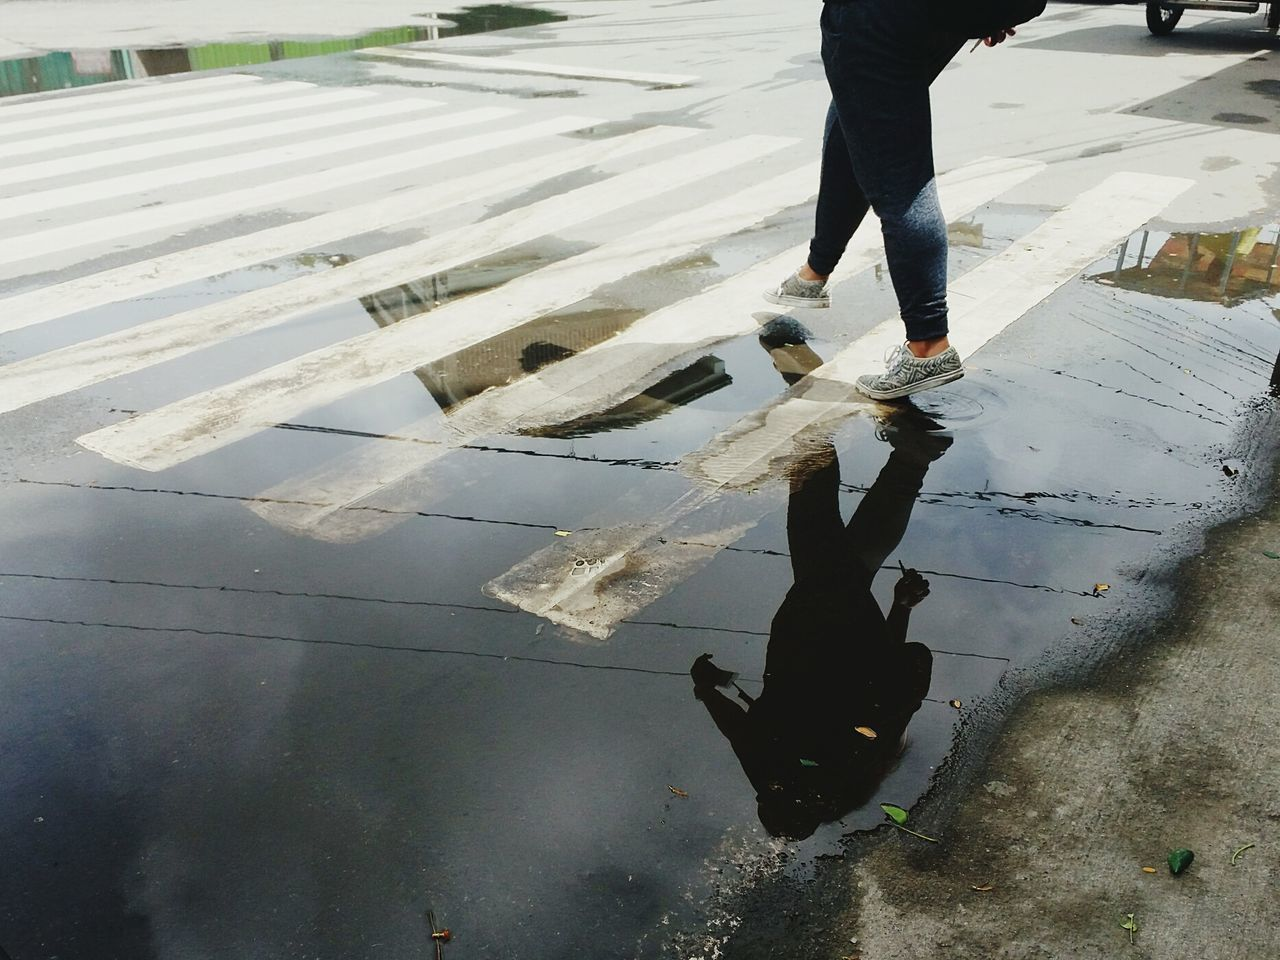 It's like I'm a mirror.. Low Section Person Walking Lifestyles Road Reflection Standing Shadow Human Foot Sunlight EyeEm Eyeem Philippines Feet Shoes Reflection Footwear Footpath FilipinaStreet Unrecognizable Person Puddle Footpath Water Outdoors Philippines